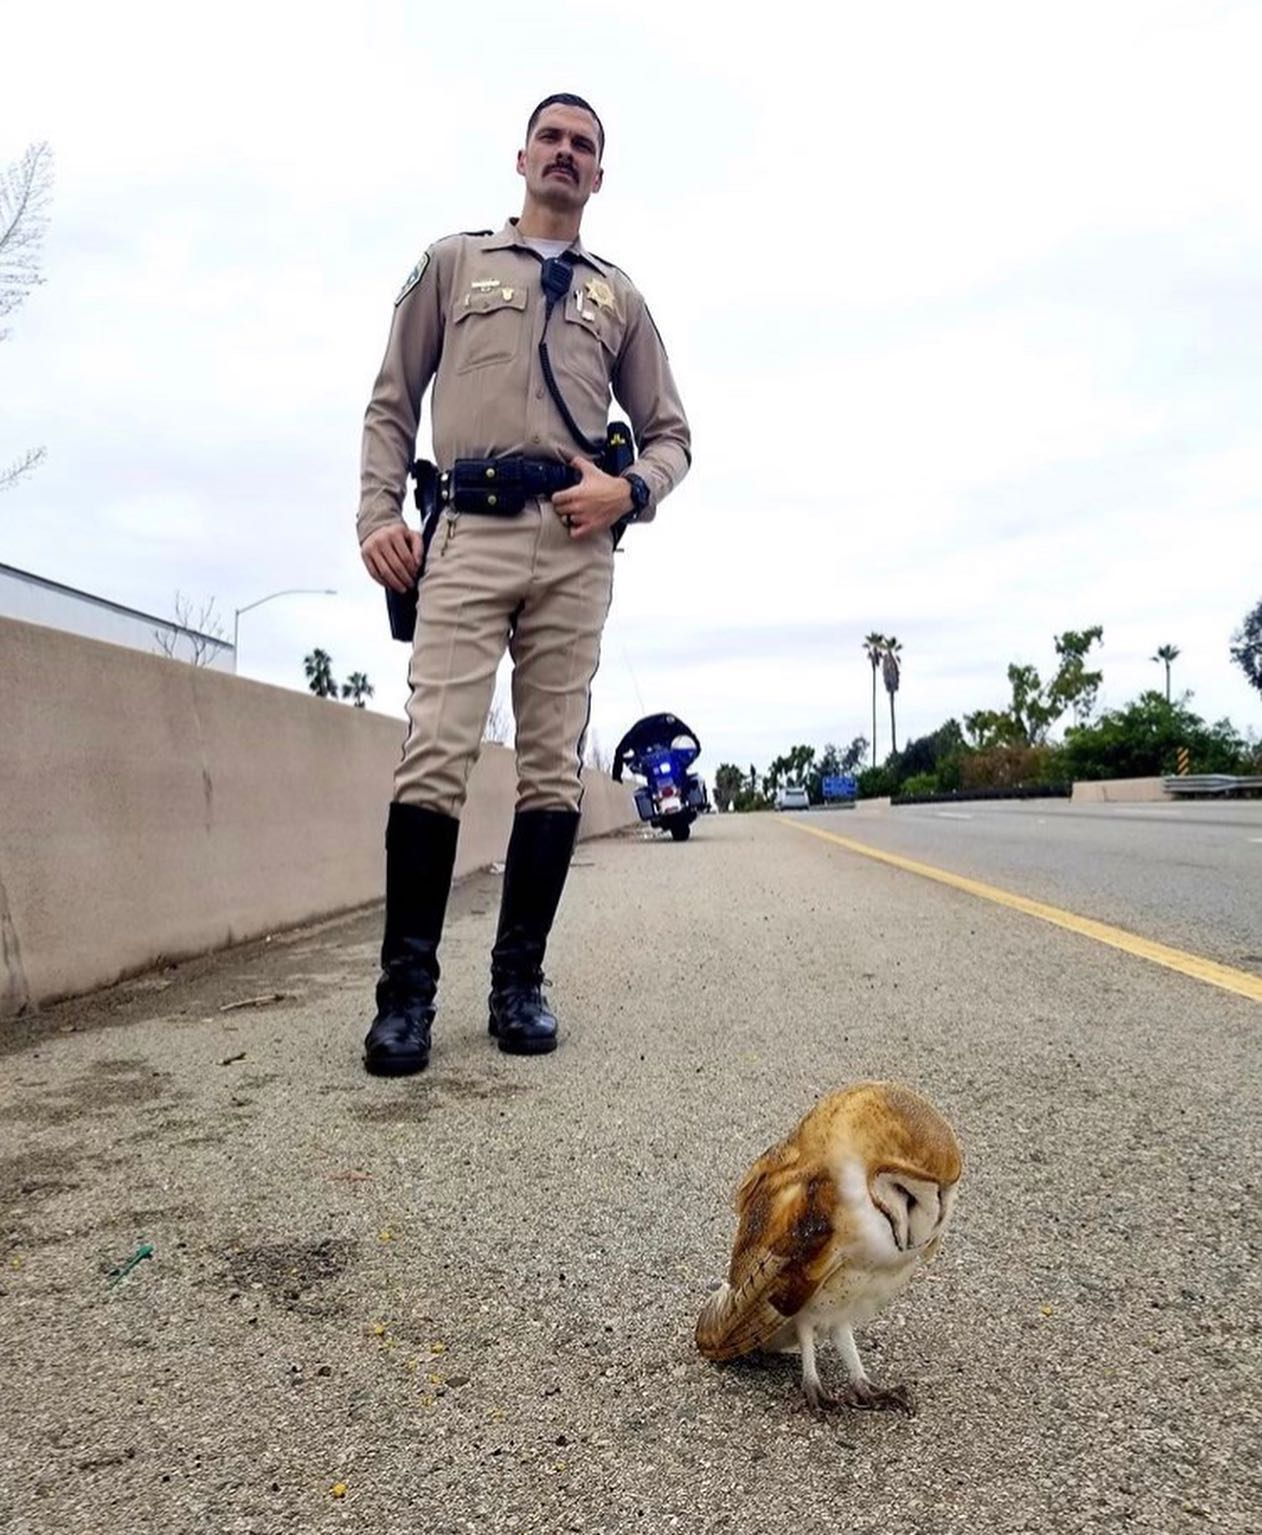 Owl hit along 101 freeway makes full recovery